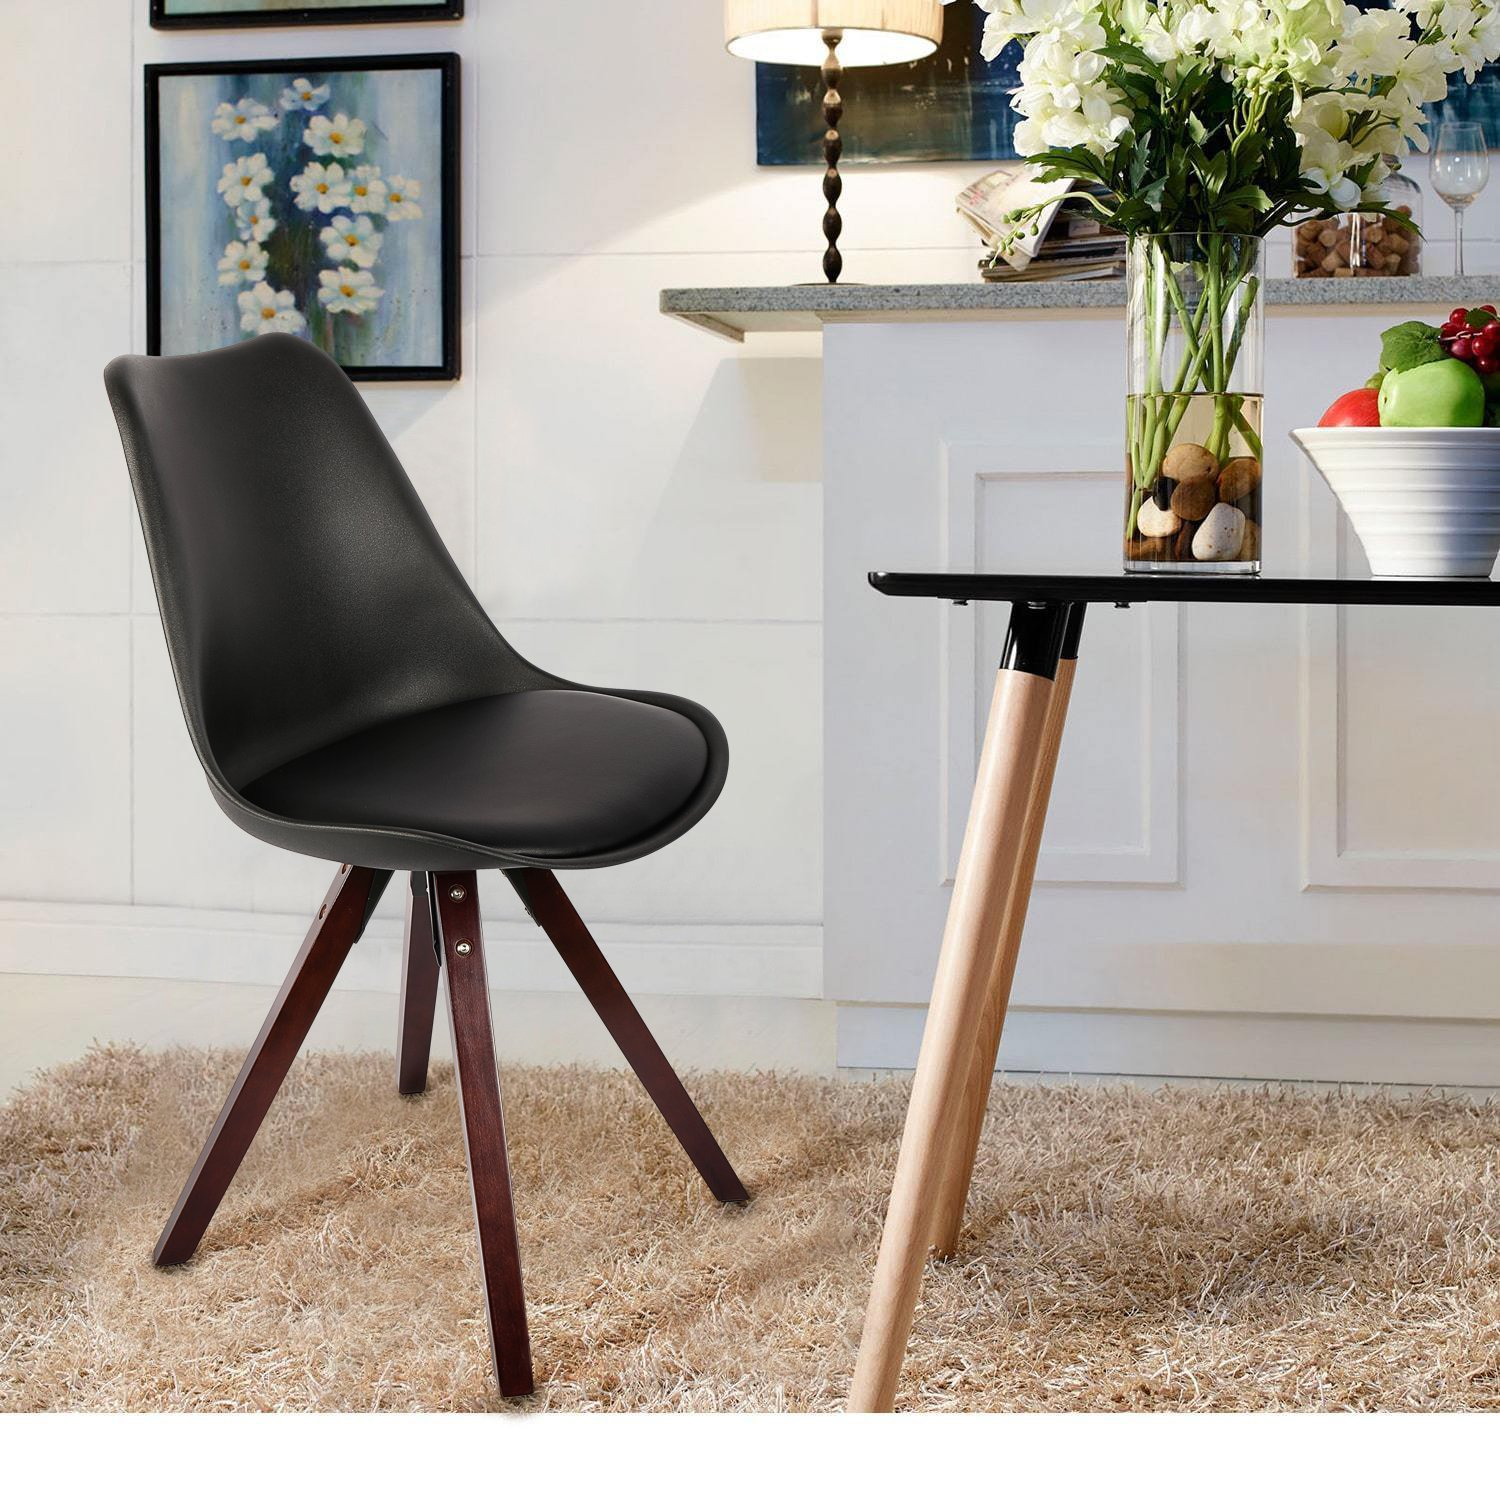 LCH Soft Padded Seat Dining/Living Room Chairs, Modern and Body Engineering Design Chairs with Solid Wooden Legs 2 PC, Black